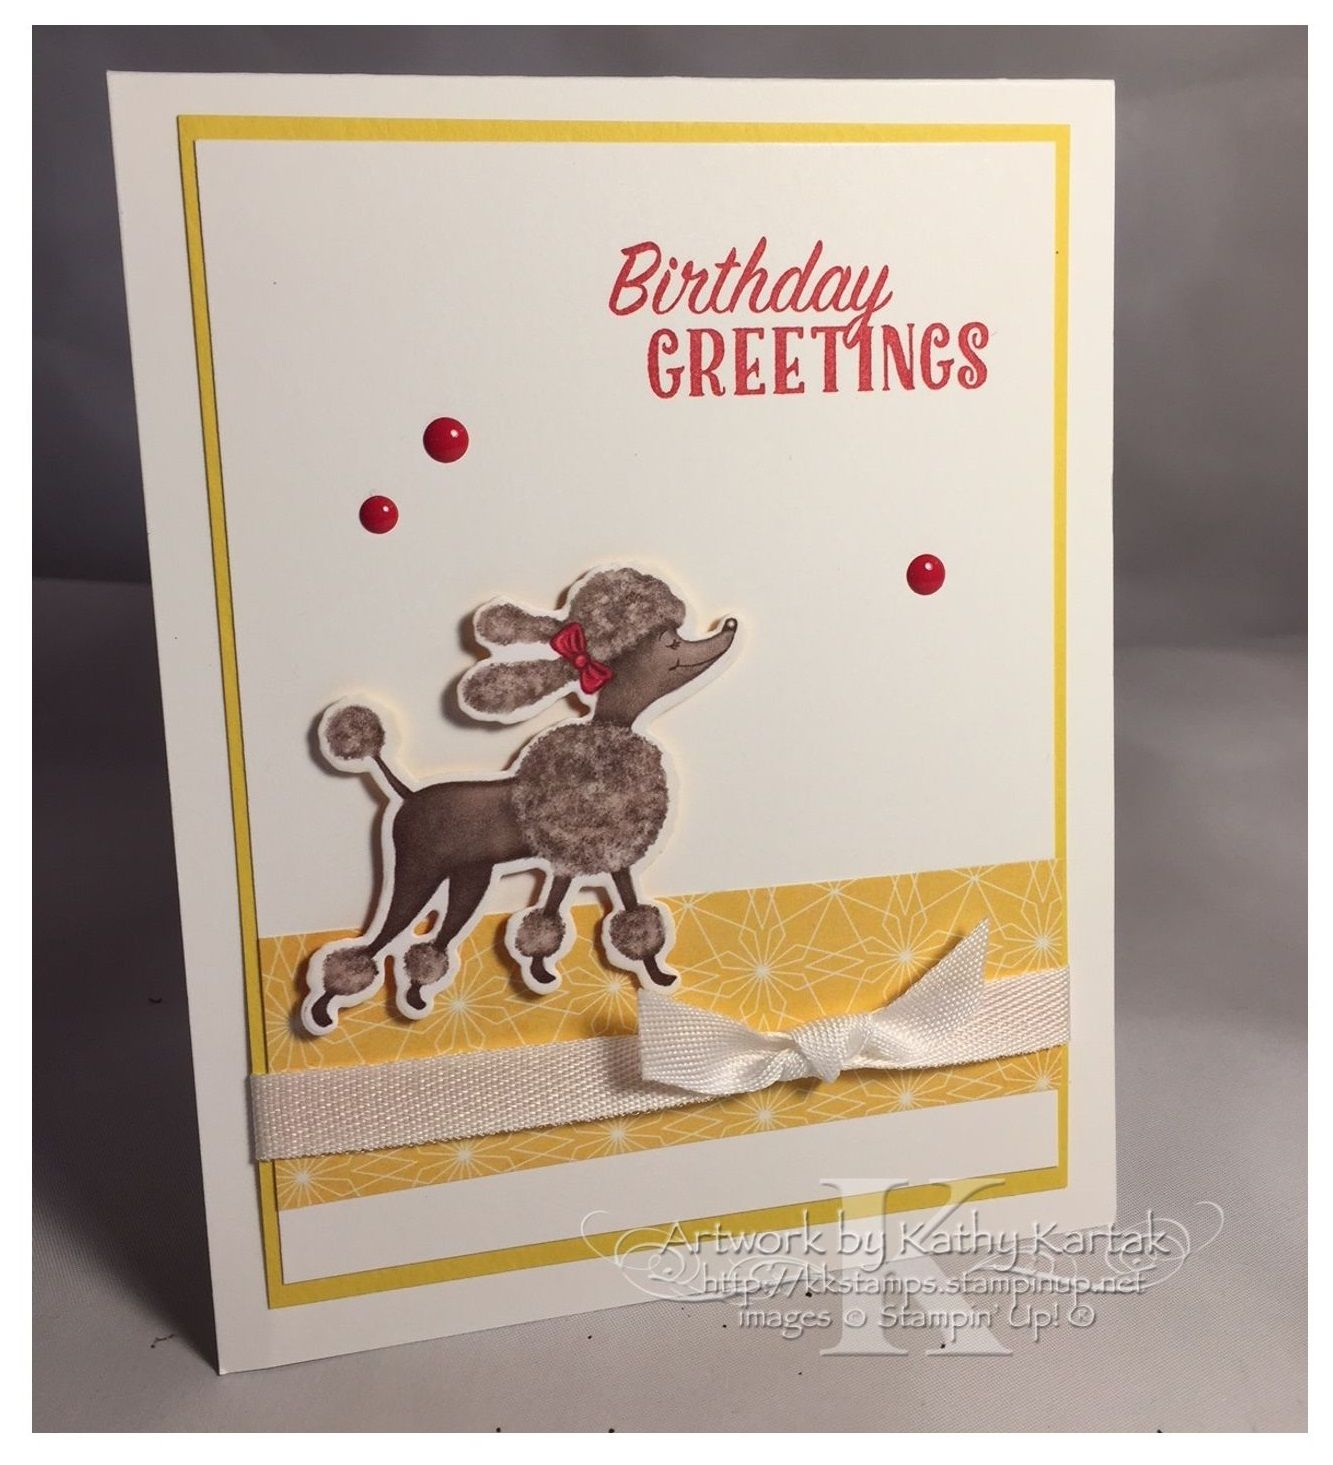 Pin by cathi duncan on birthday cards pinterest cards